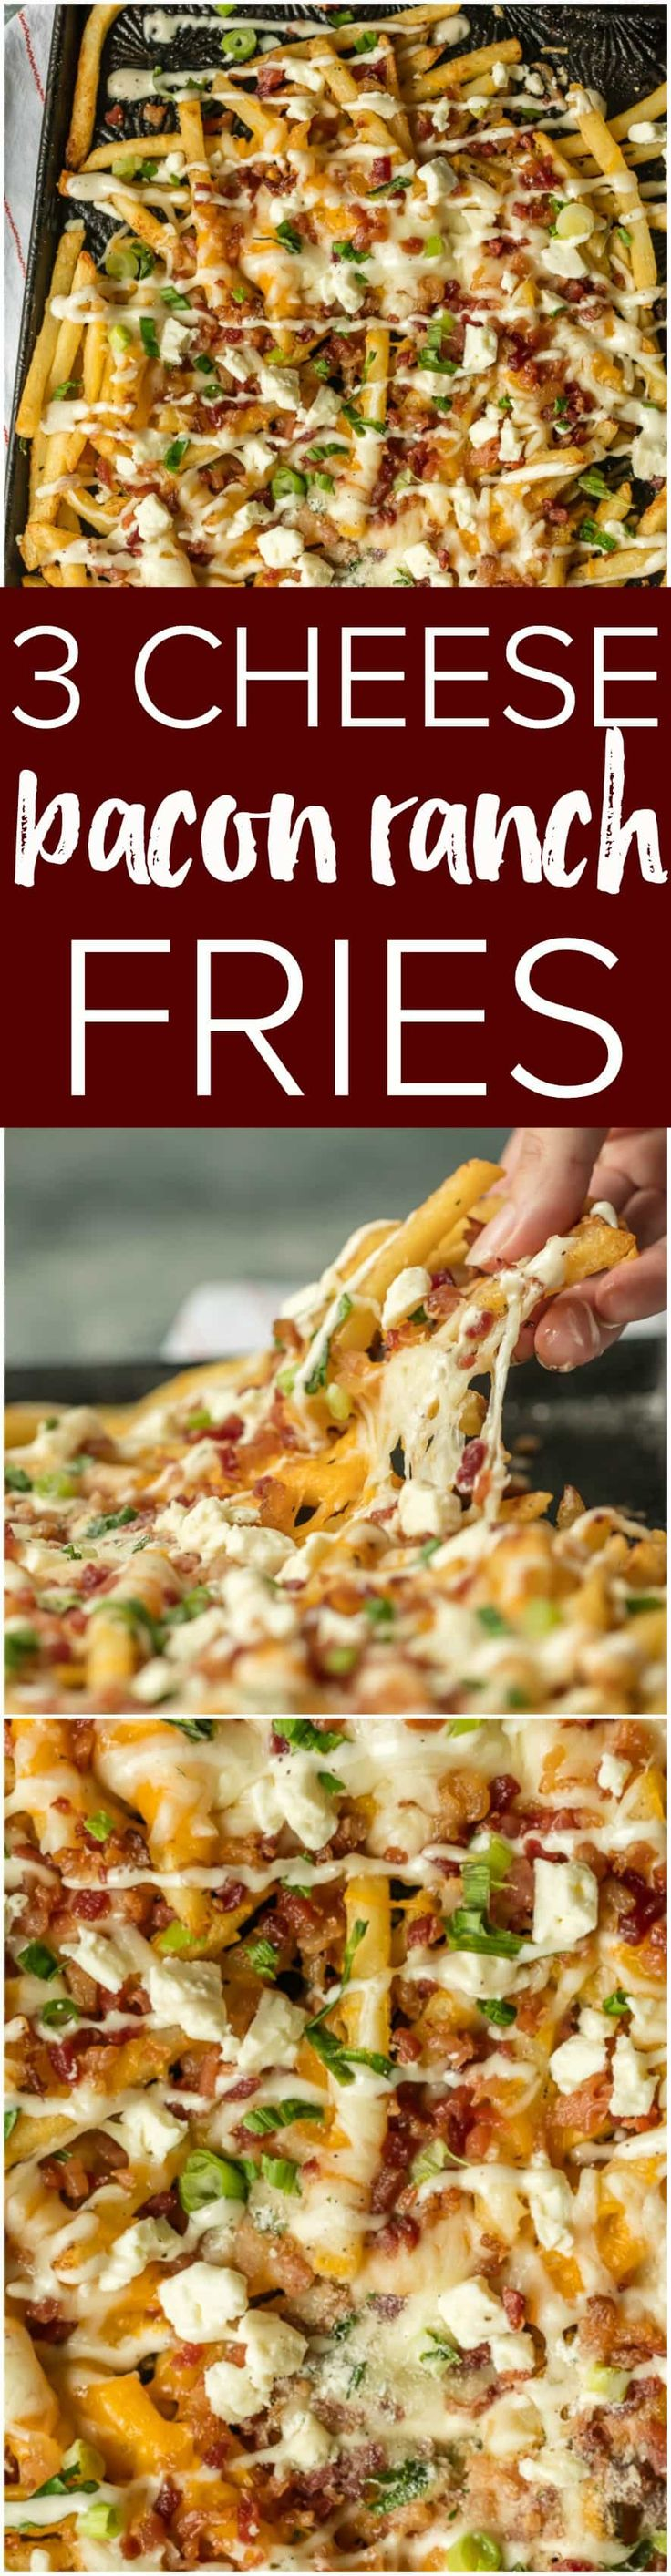 Nothing makes game day delicious more than 3 CHEESE BACON RANCH FRIES. This easy and fun appetizer takes crispy fries and tops them with ranch seasoning, bacon, cheddar, mozzarella, and feta.  3 Cheese Bacon Ranch Fries are PERFECT for game day this weekend! #ad #ranchout @HVRanch @Walmart